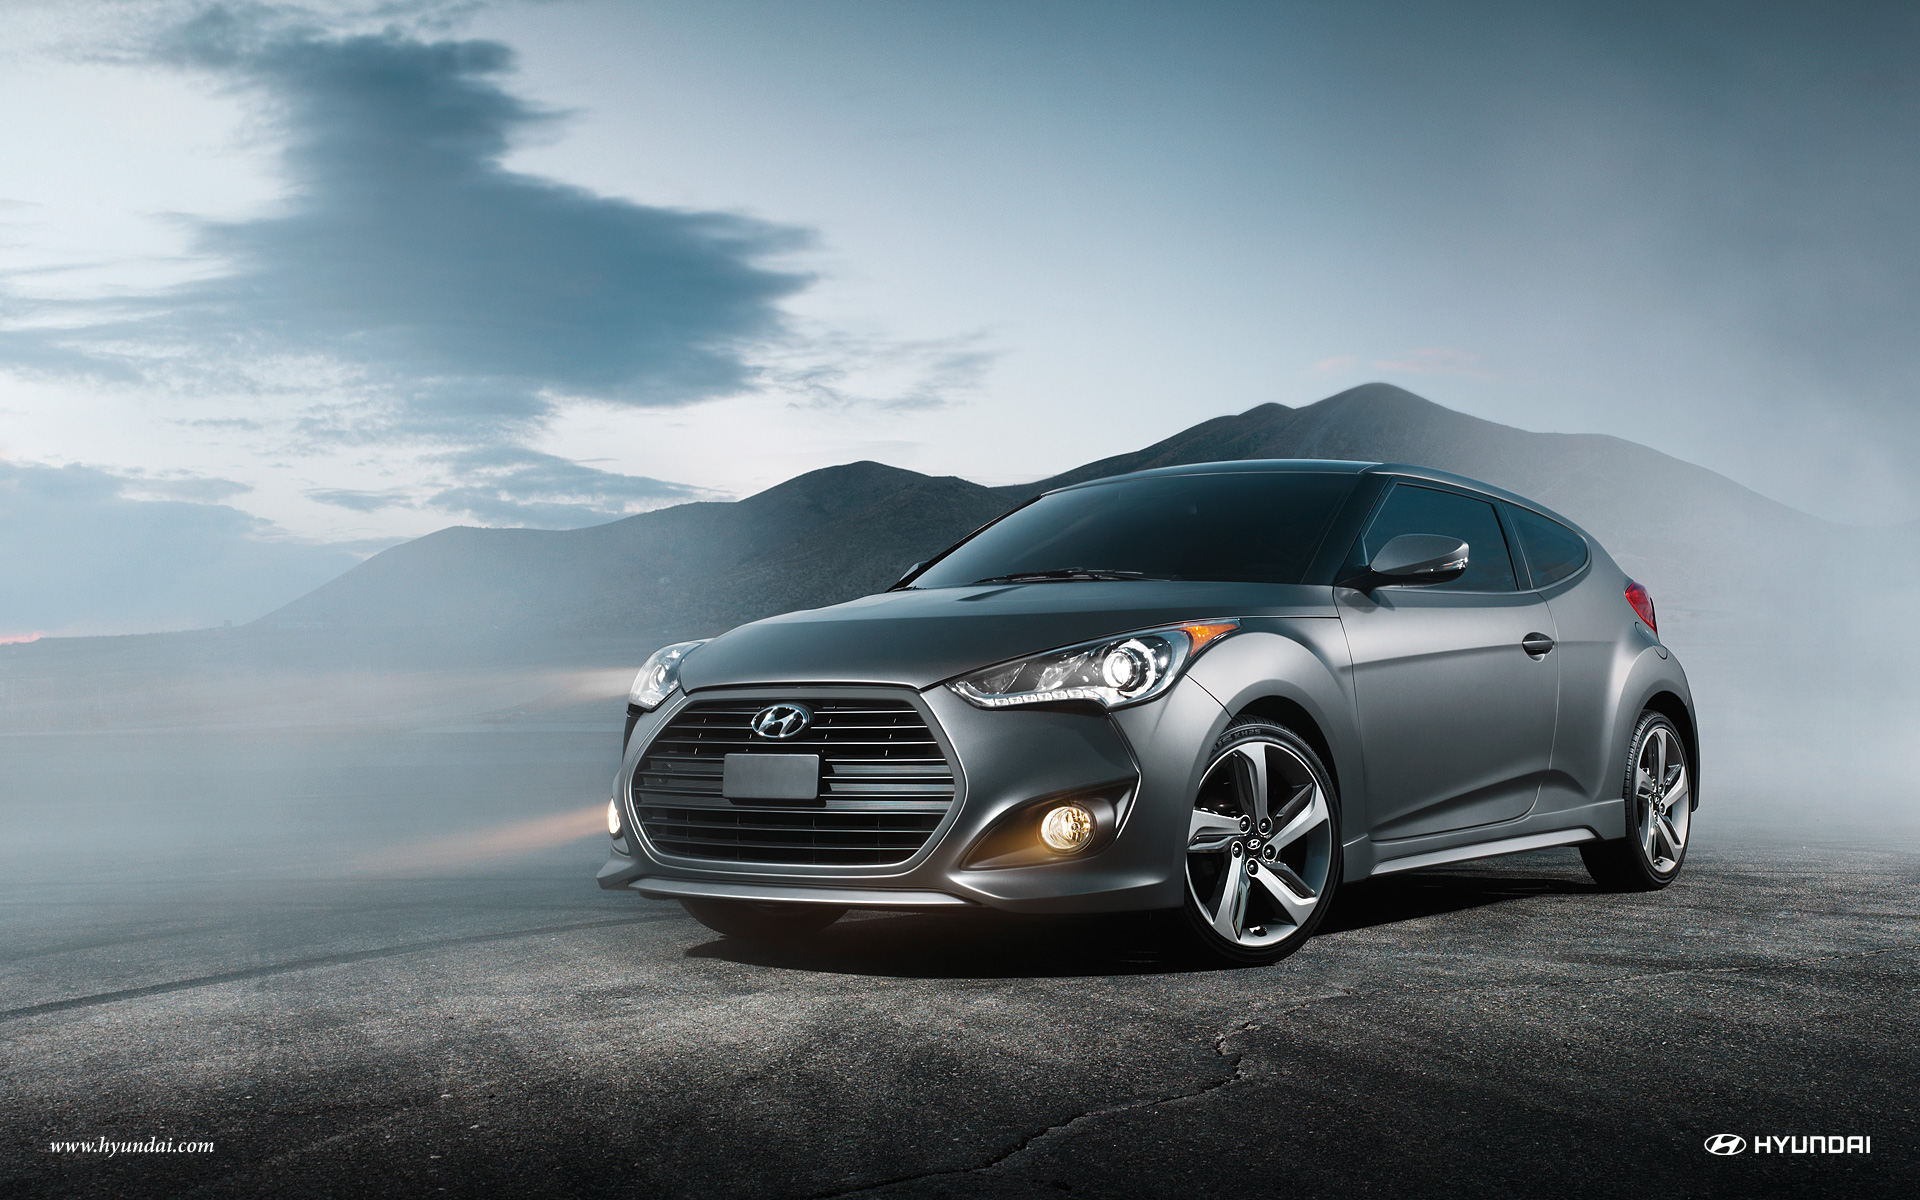 2014 Hyundai Veloster Wallpaper and Image Gallery 1920x1200